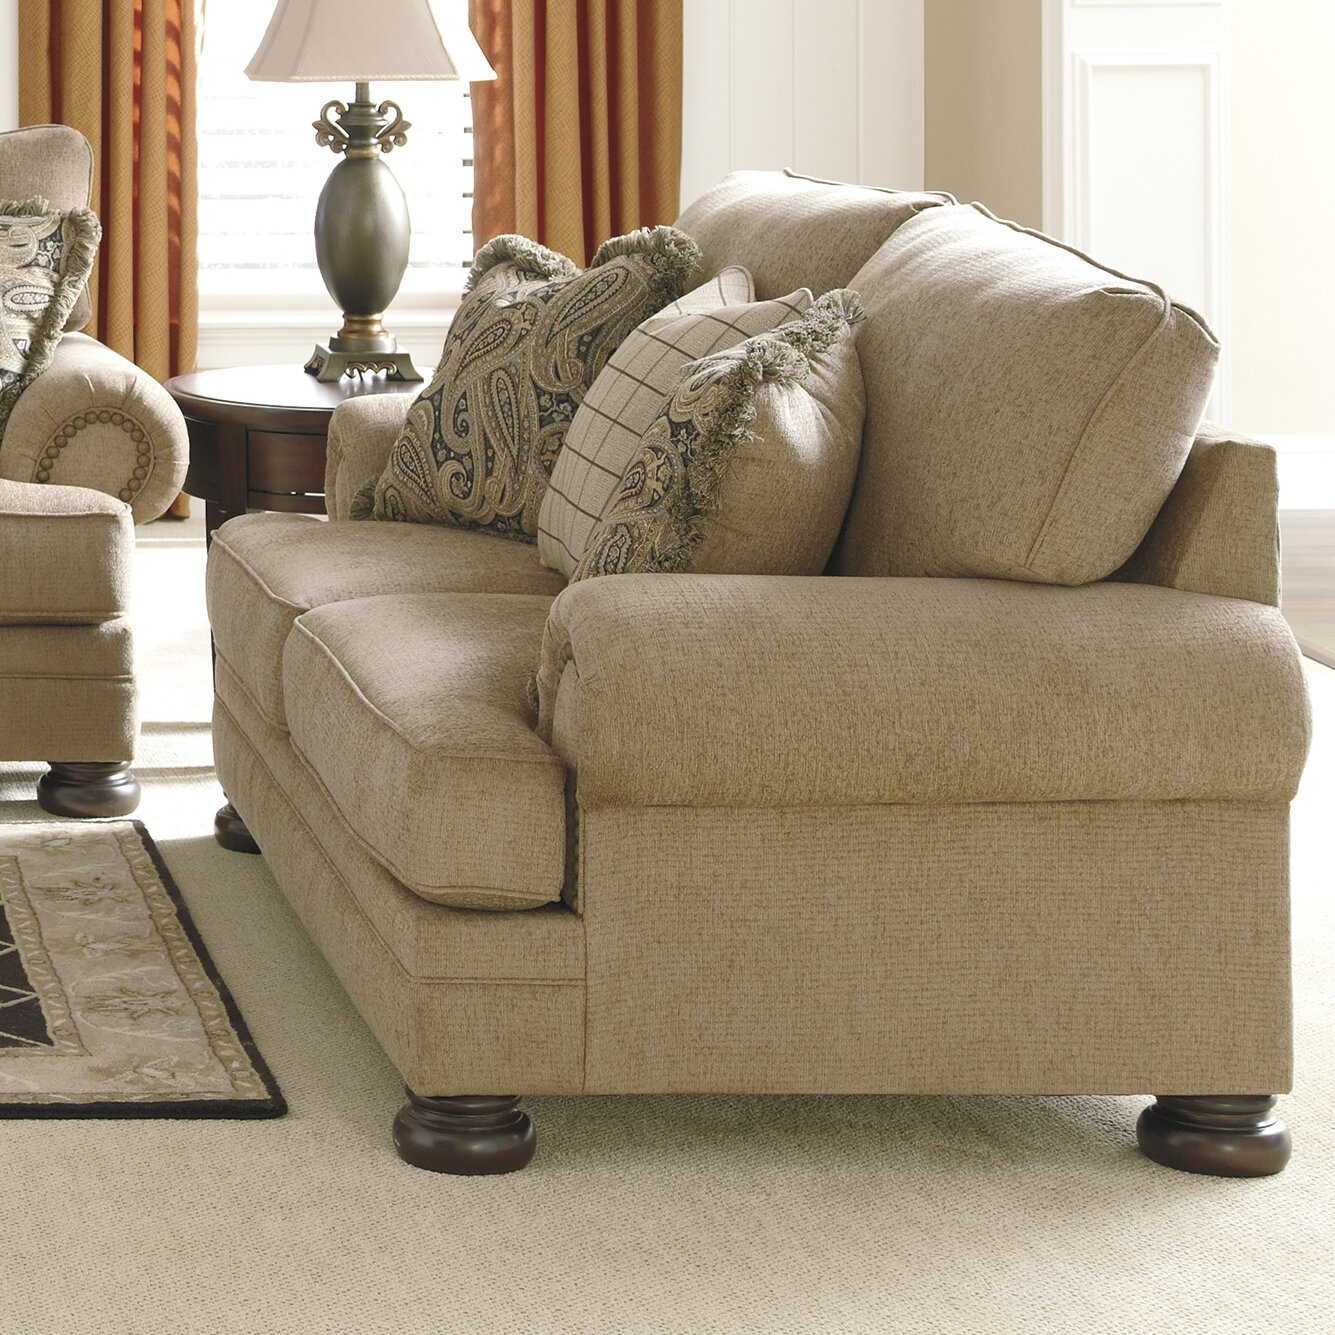 Ashley Signature Collection: Signature Design By Ashley Dozier Living Room Collection